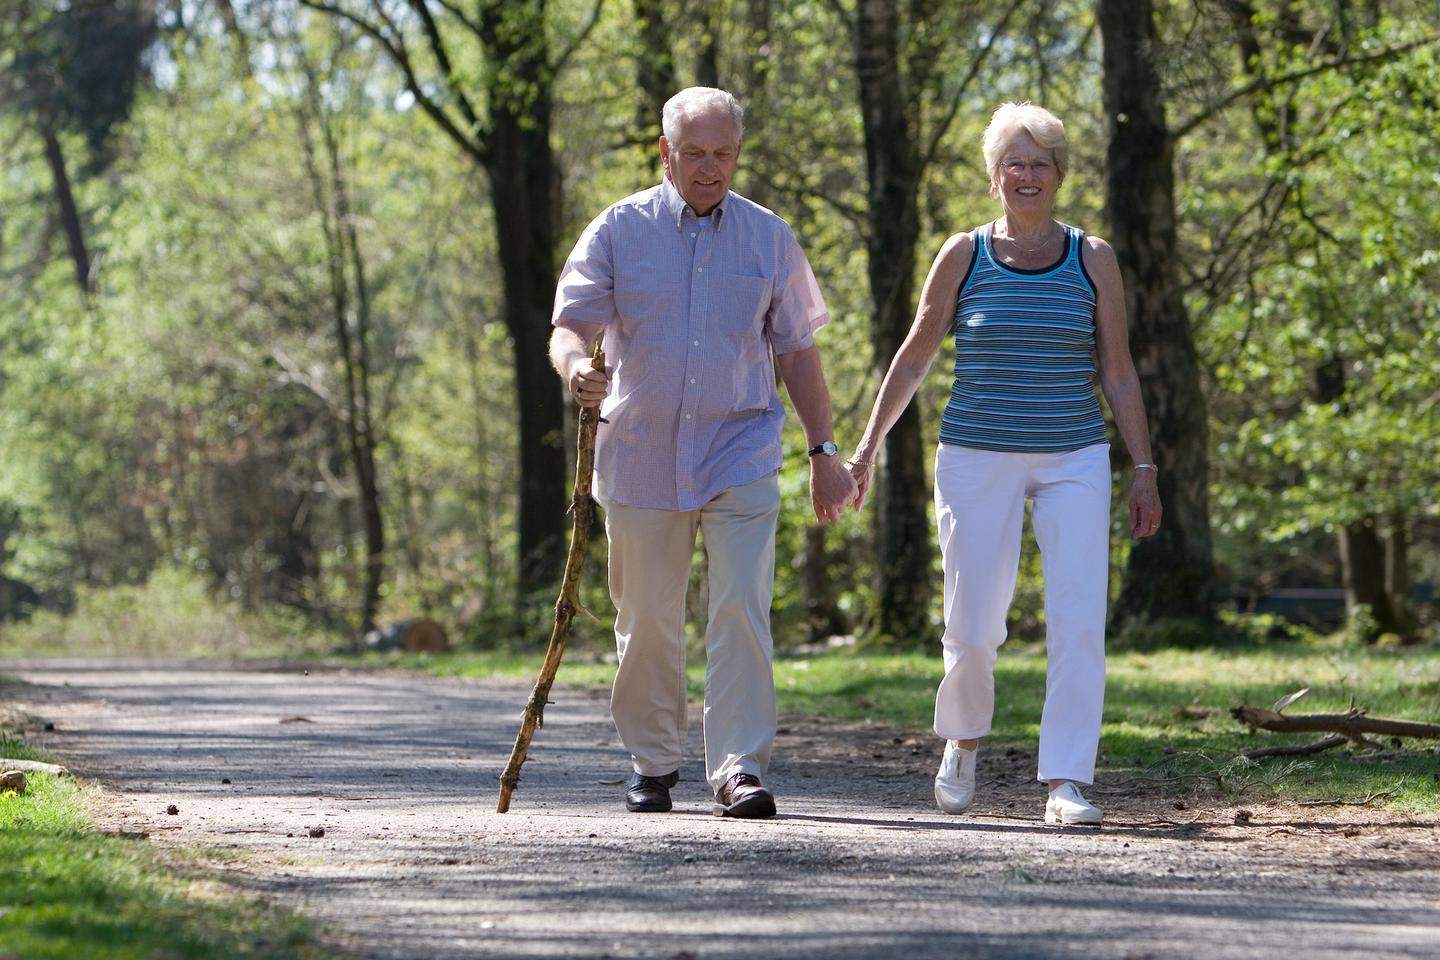 Doctors might soon be able to differentiate between dementia types in older patients by analyzing the way they walk